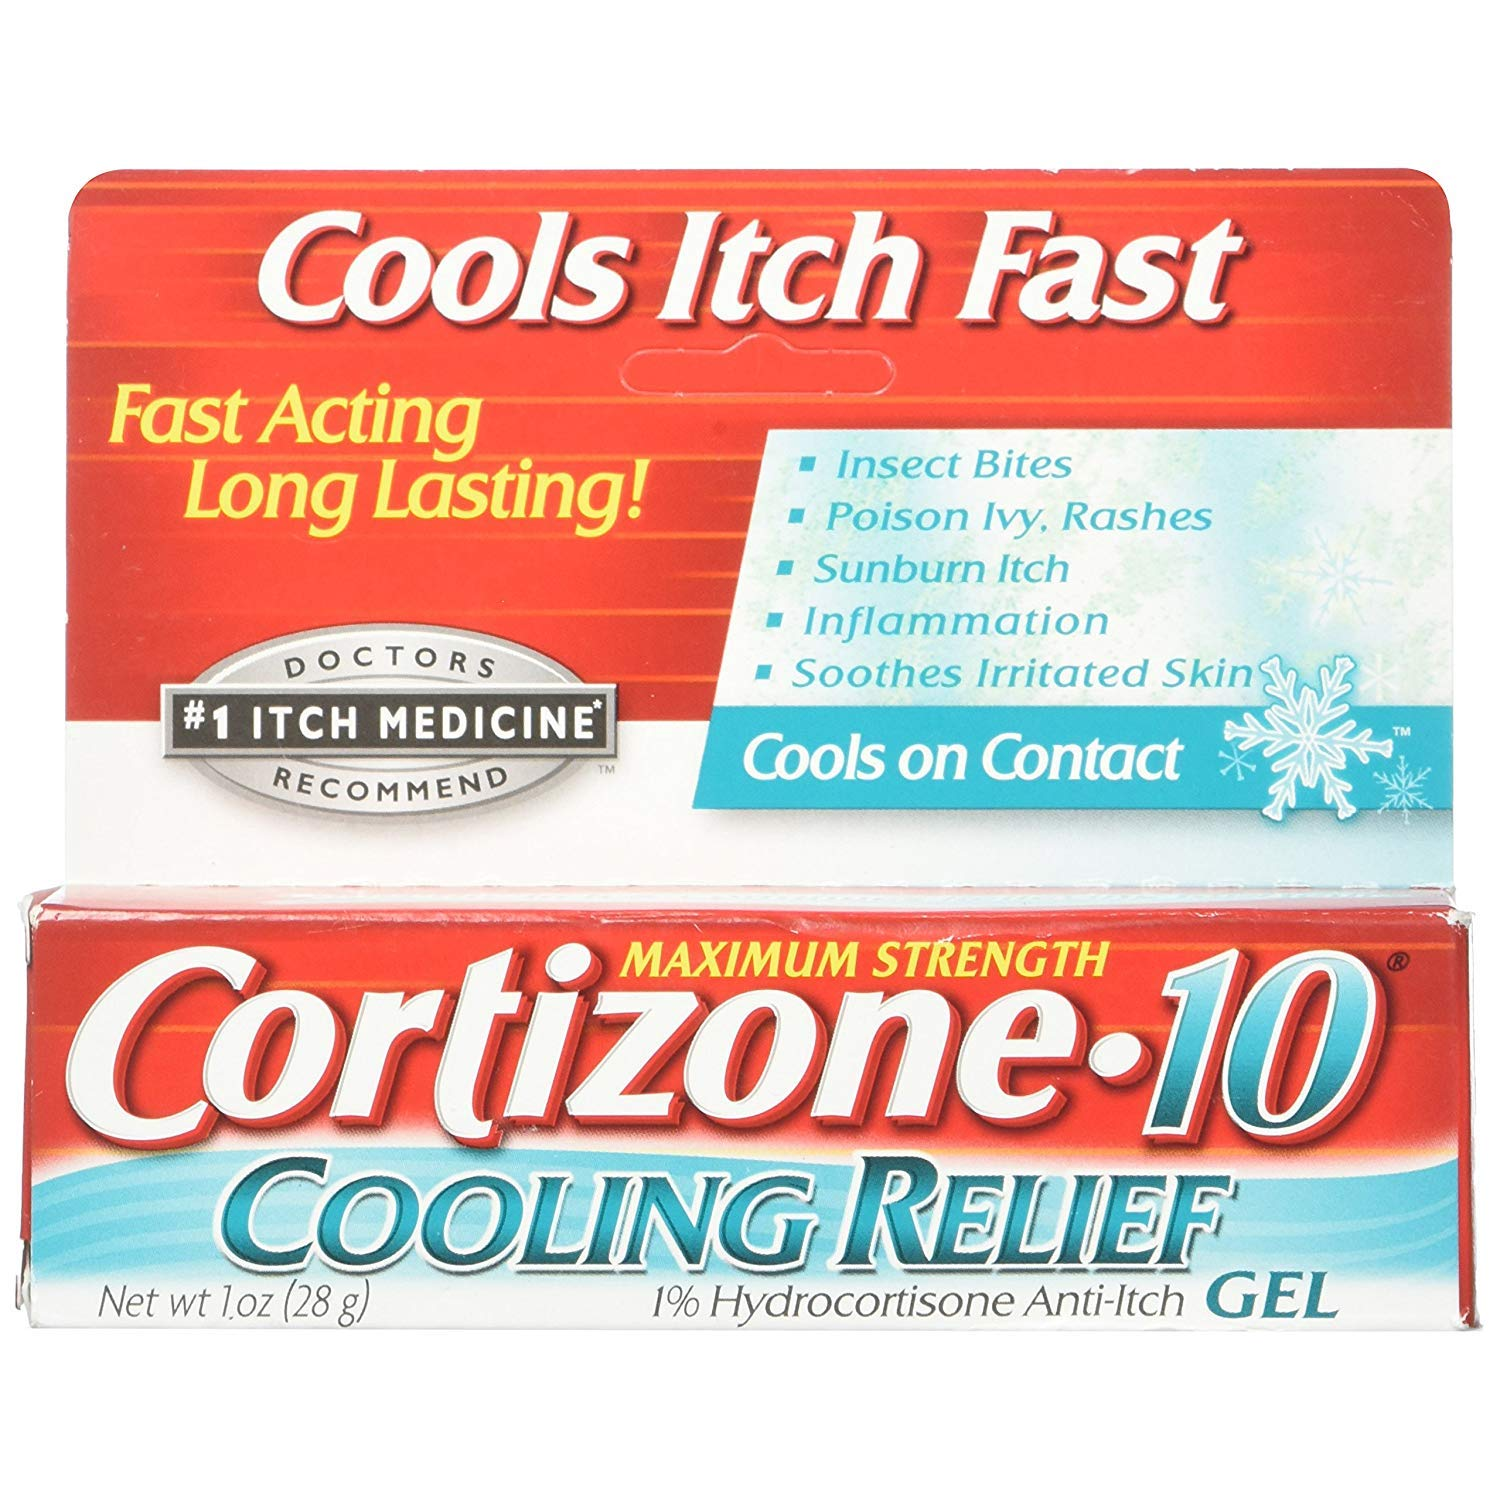 Cortizone-10 Cooling Relief Anti-Itch Gel 1 oz (Pack of 9) by Cortizone 10